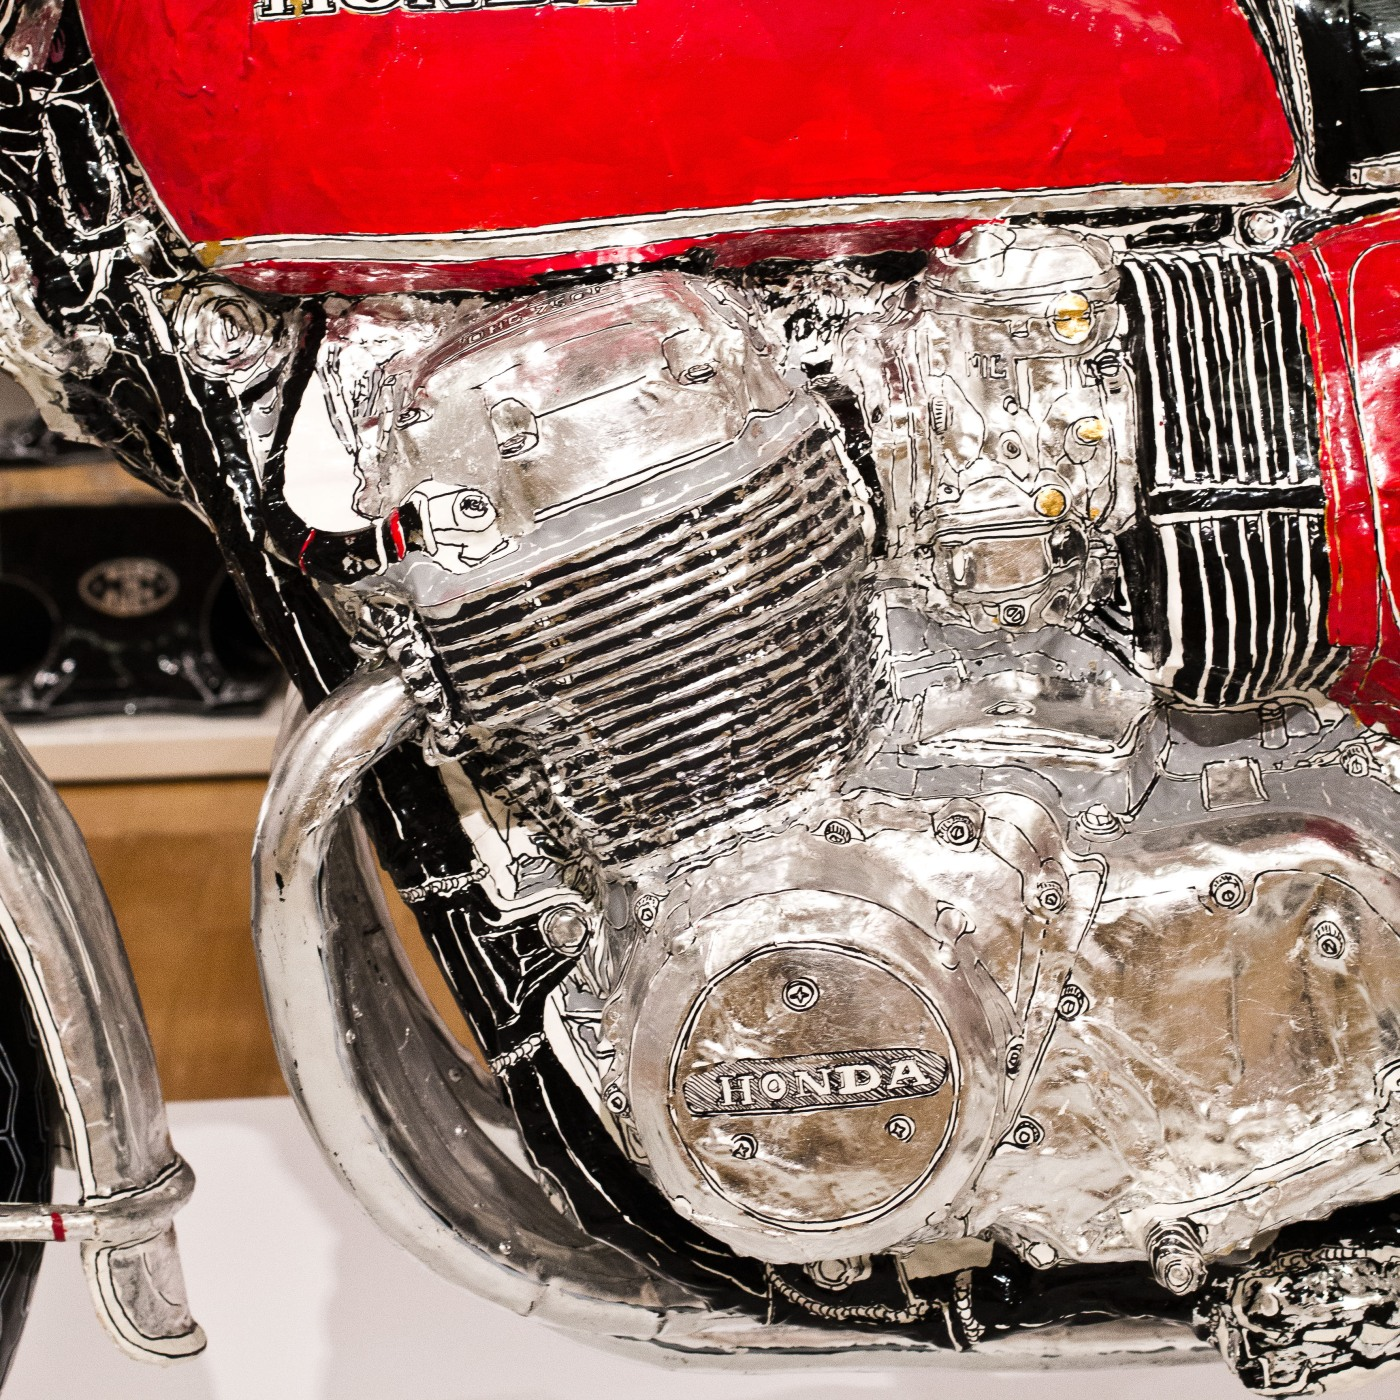 Honda CB750 K1 sculpture up close